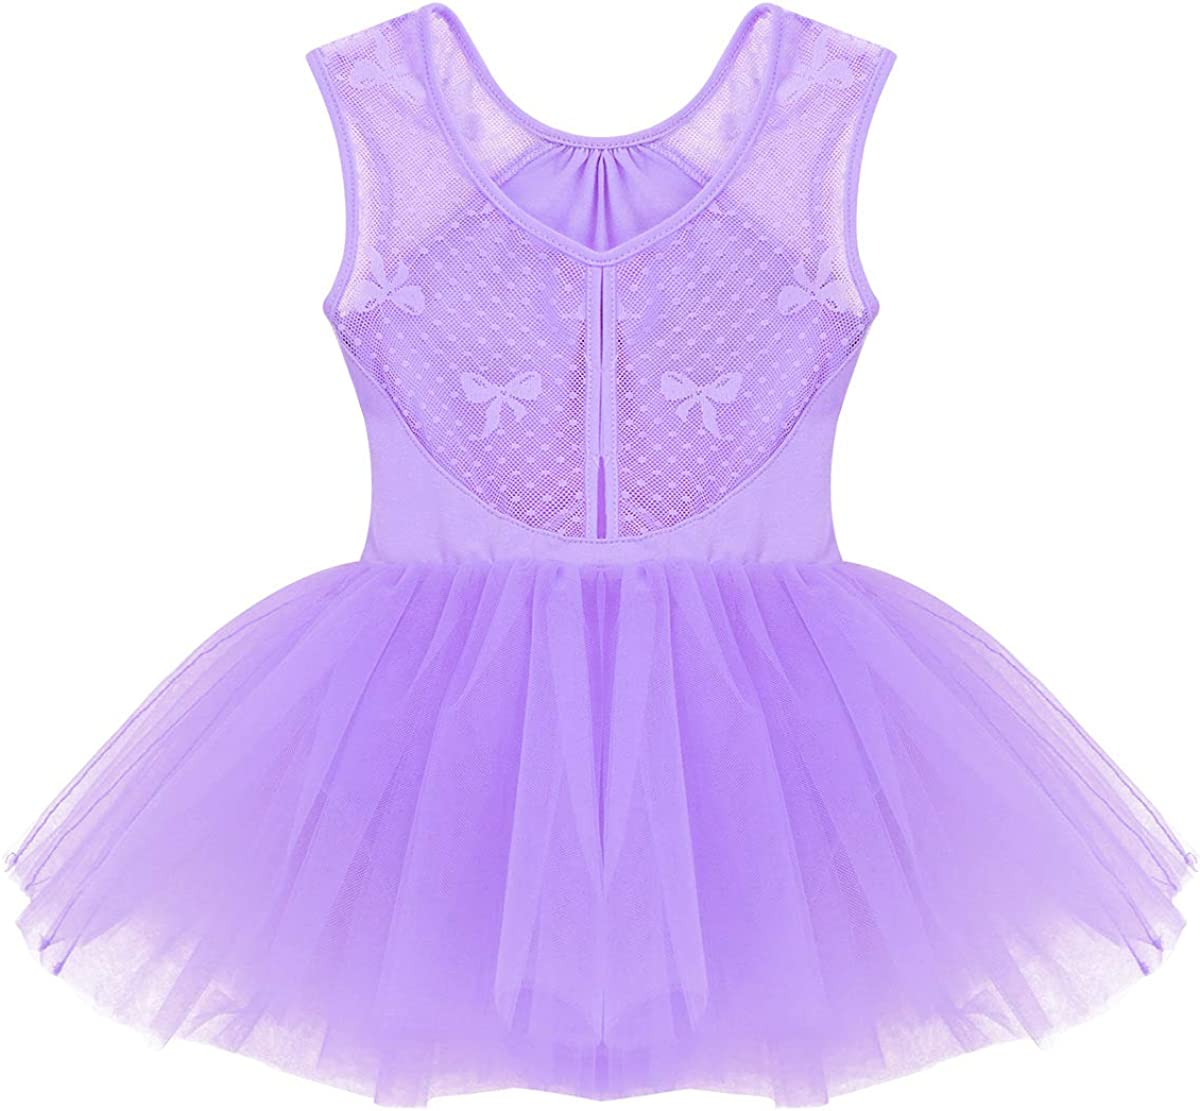 FEESHOW Kids Girls Mesh Splice Camisole Leotard Gymnastics Ballet Dance Ruffle Tutu Dress